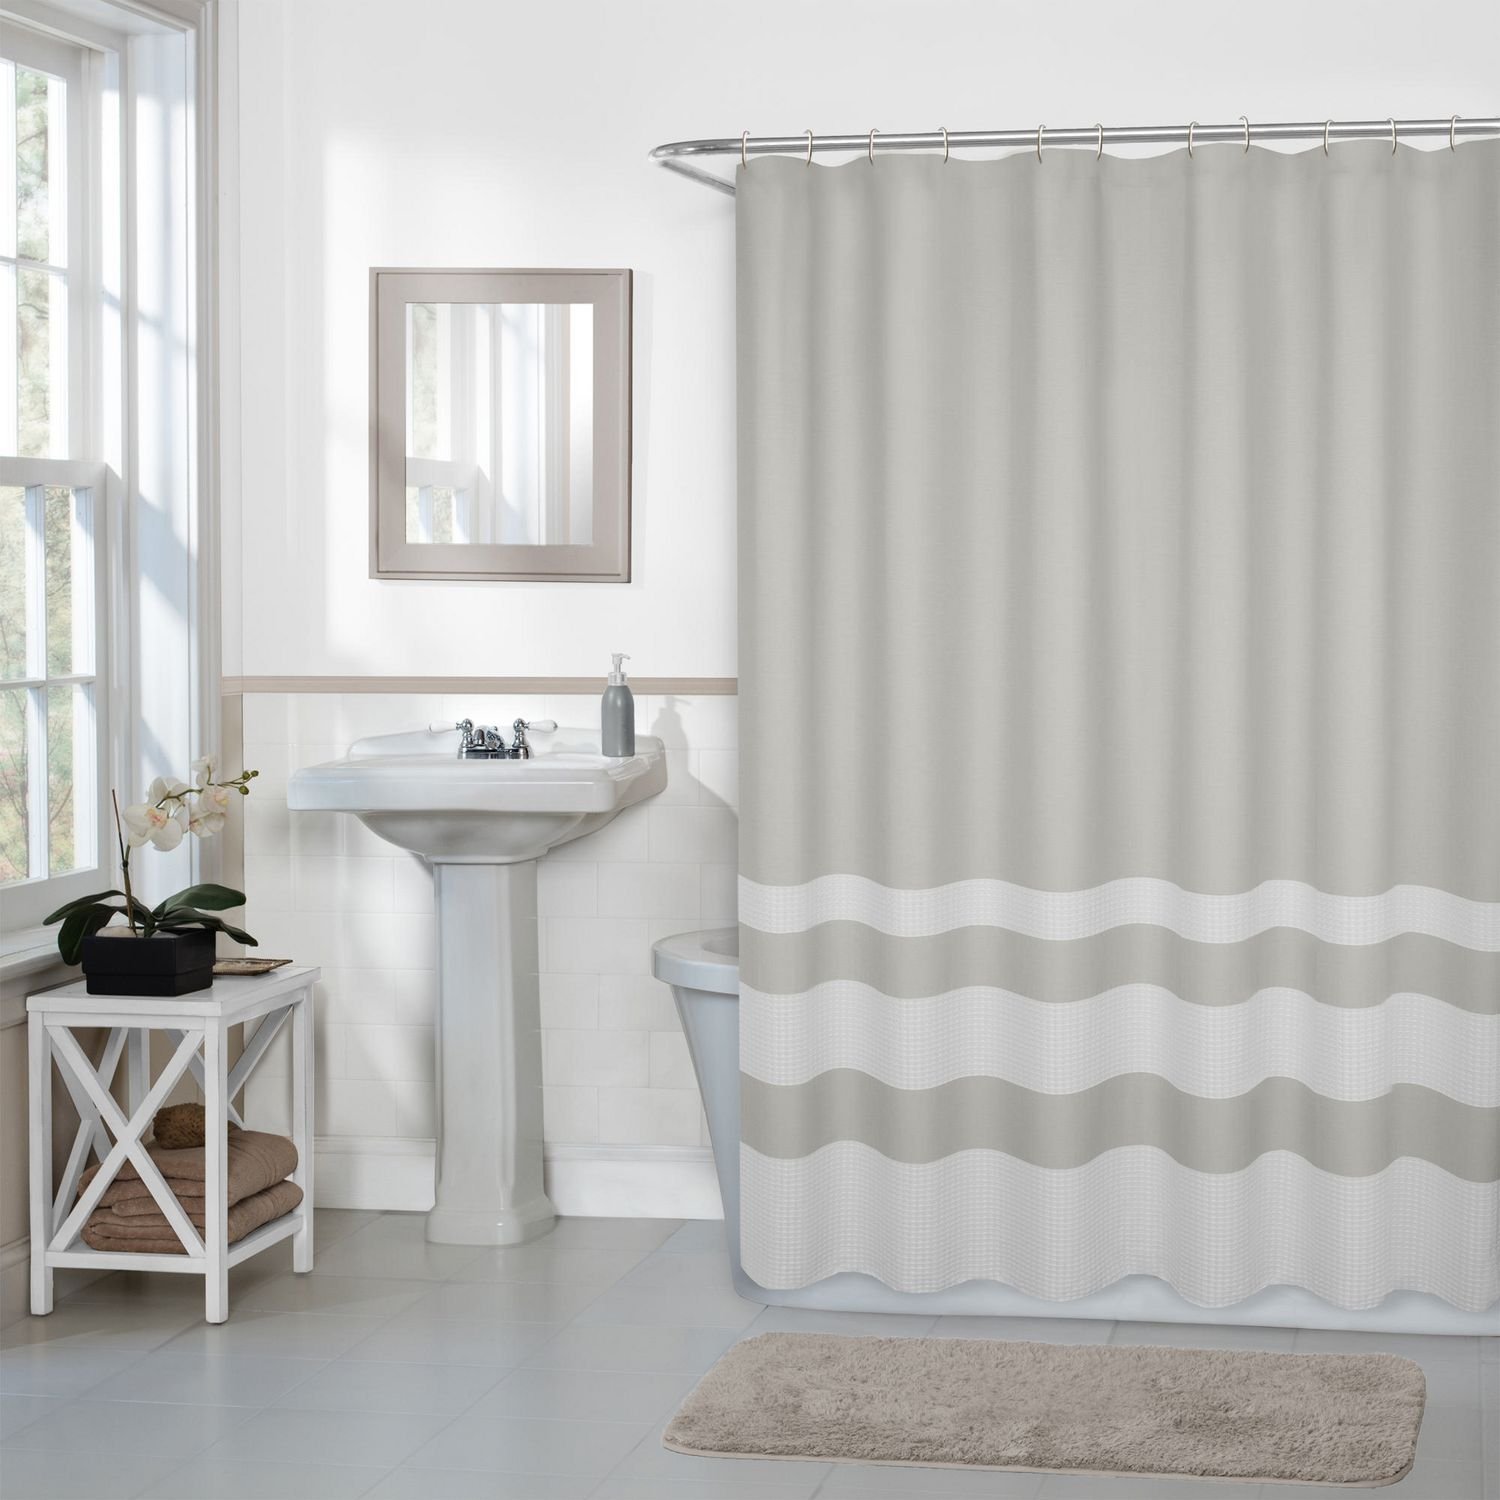 Hometrends Home Trends Textured Waffle Stripe Fabric Shower Curtain 70 Inches X 72 Inches Ivory